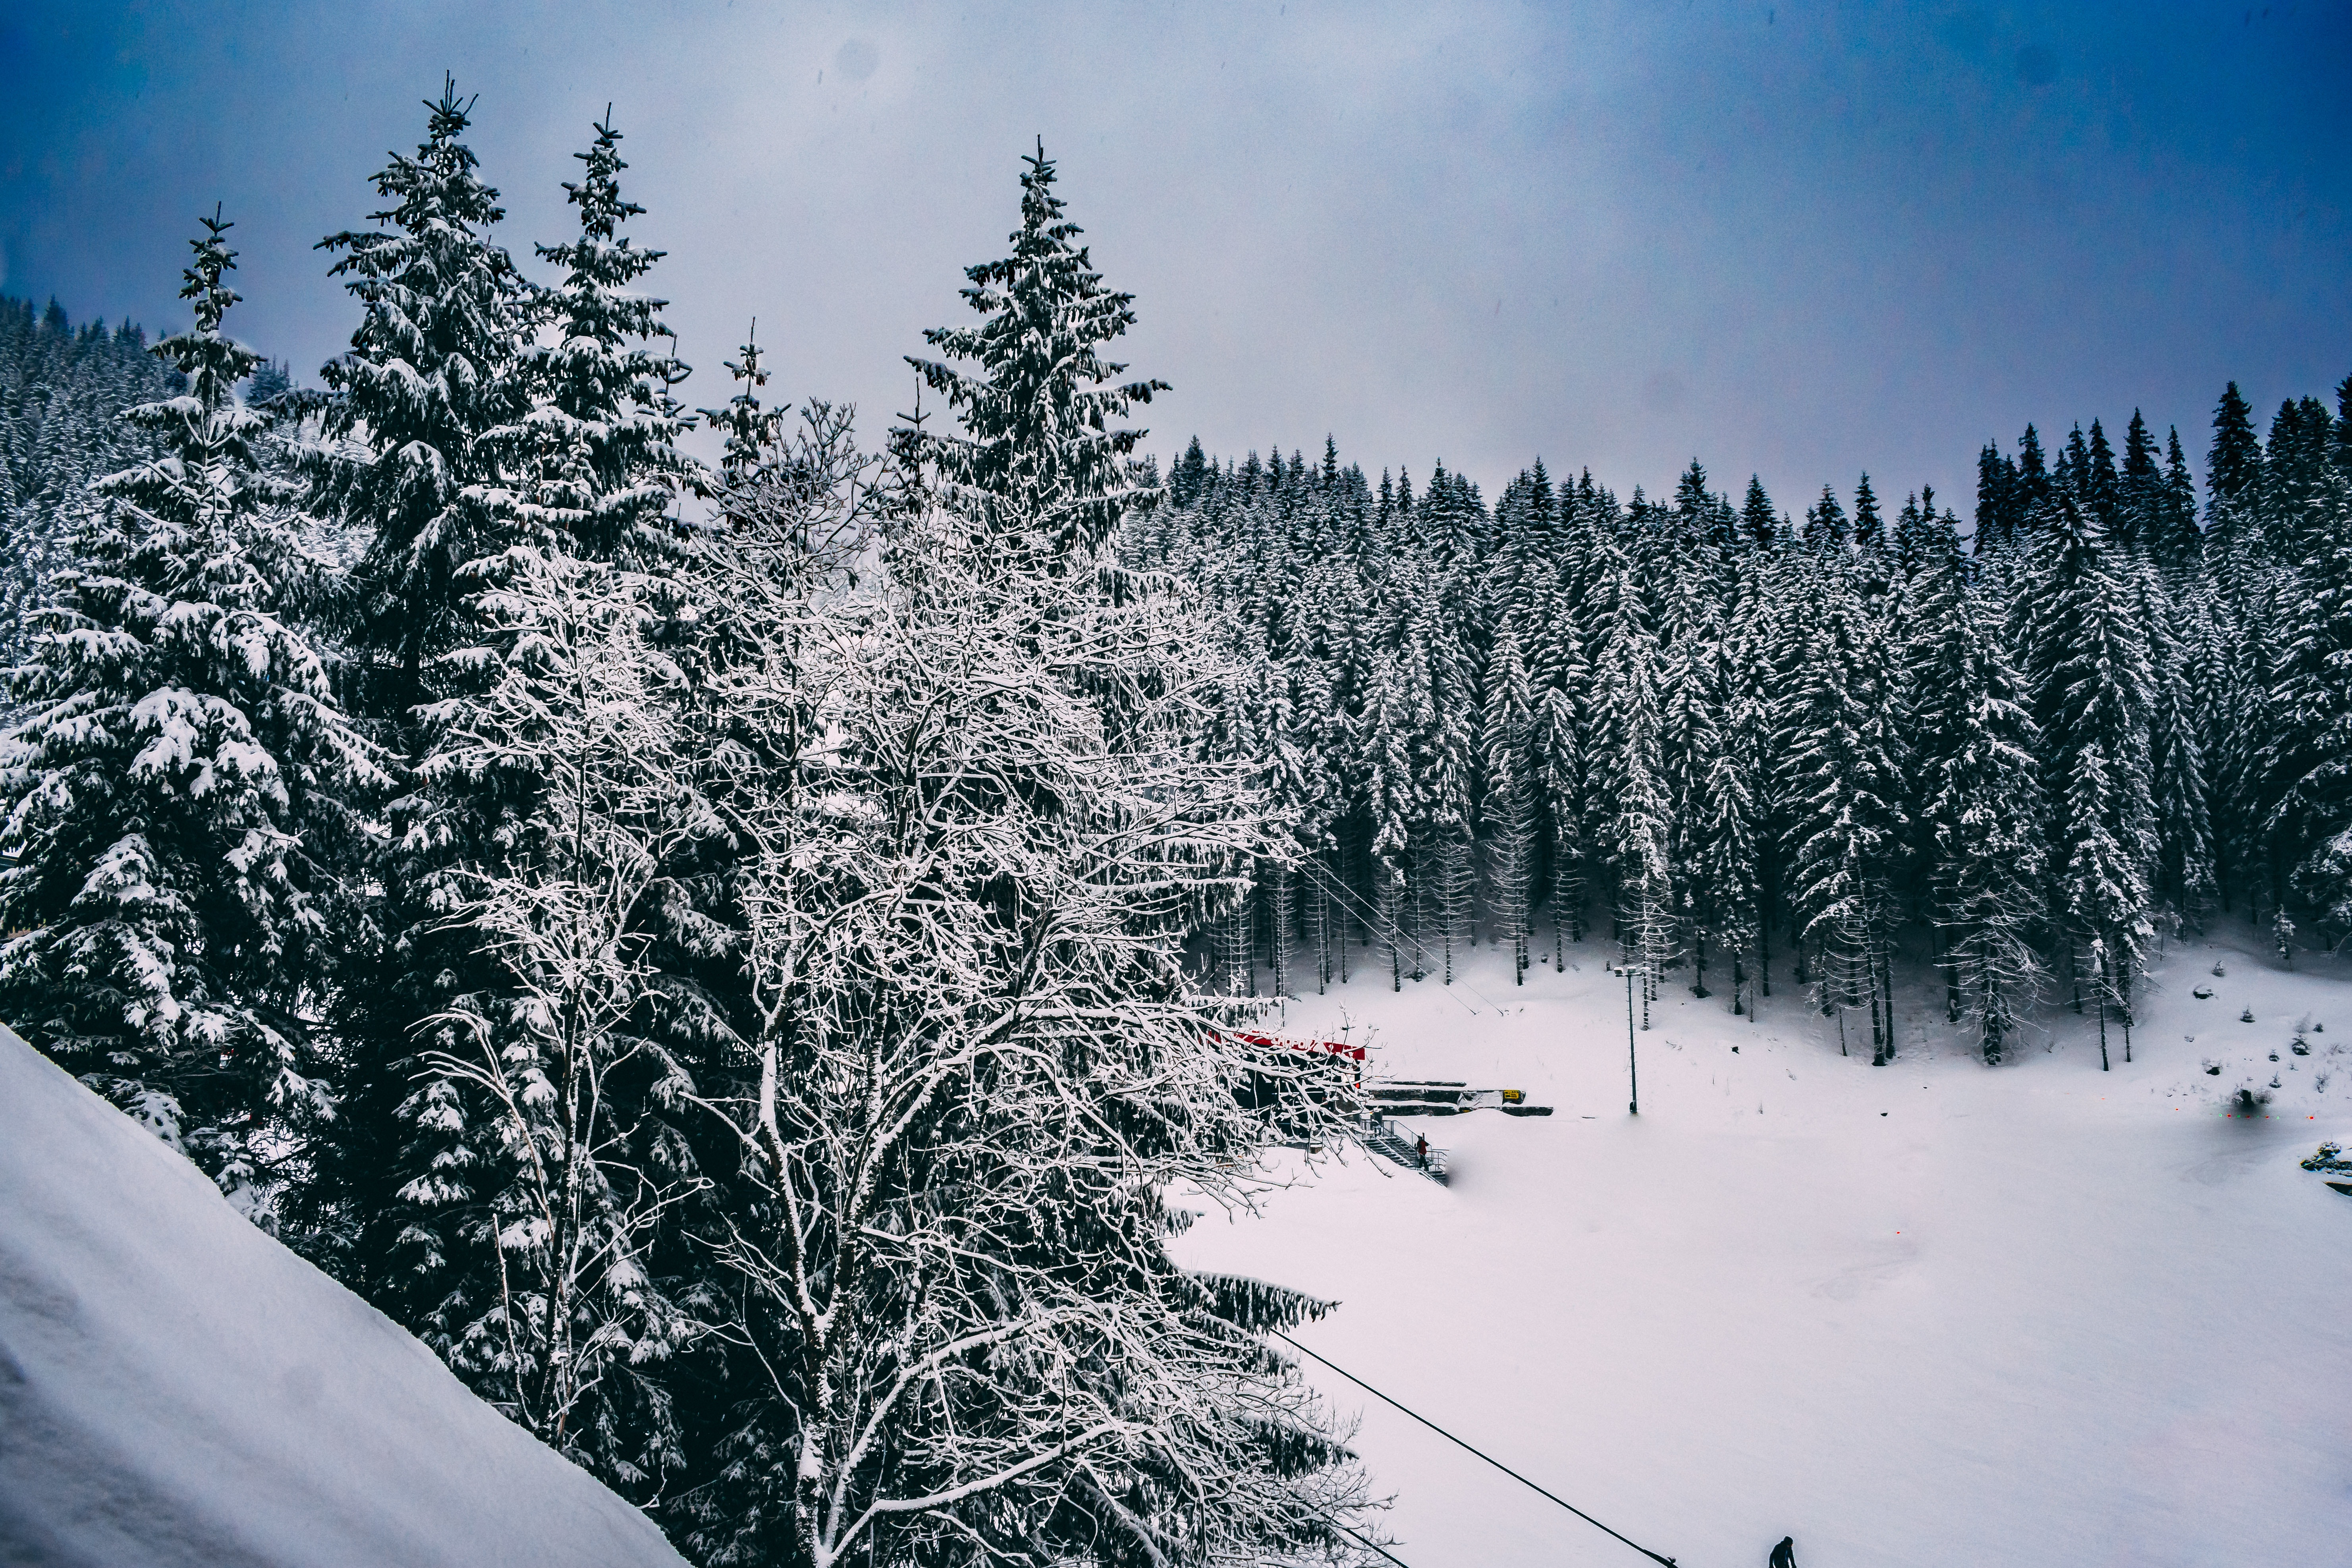 Green Pine Trees Covered With Snow Under Cloudy Blue Sky, Adventure, Skiing, Pines, Scenic, HQ Photo